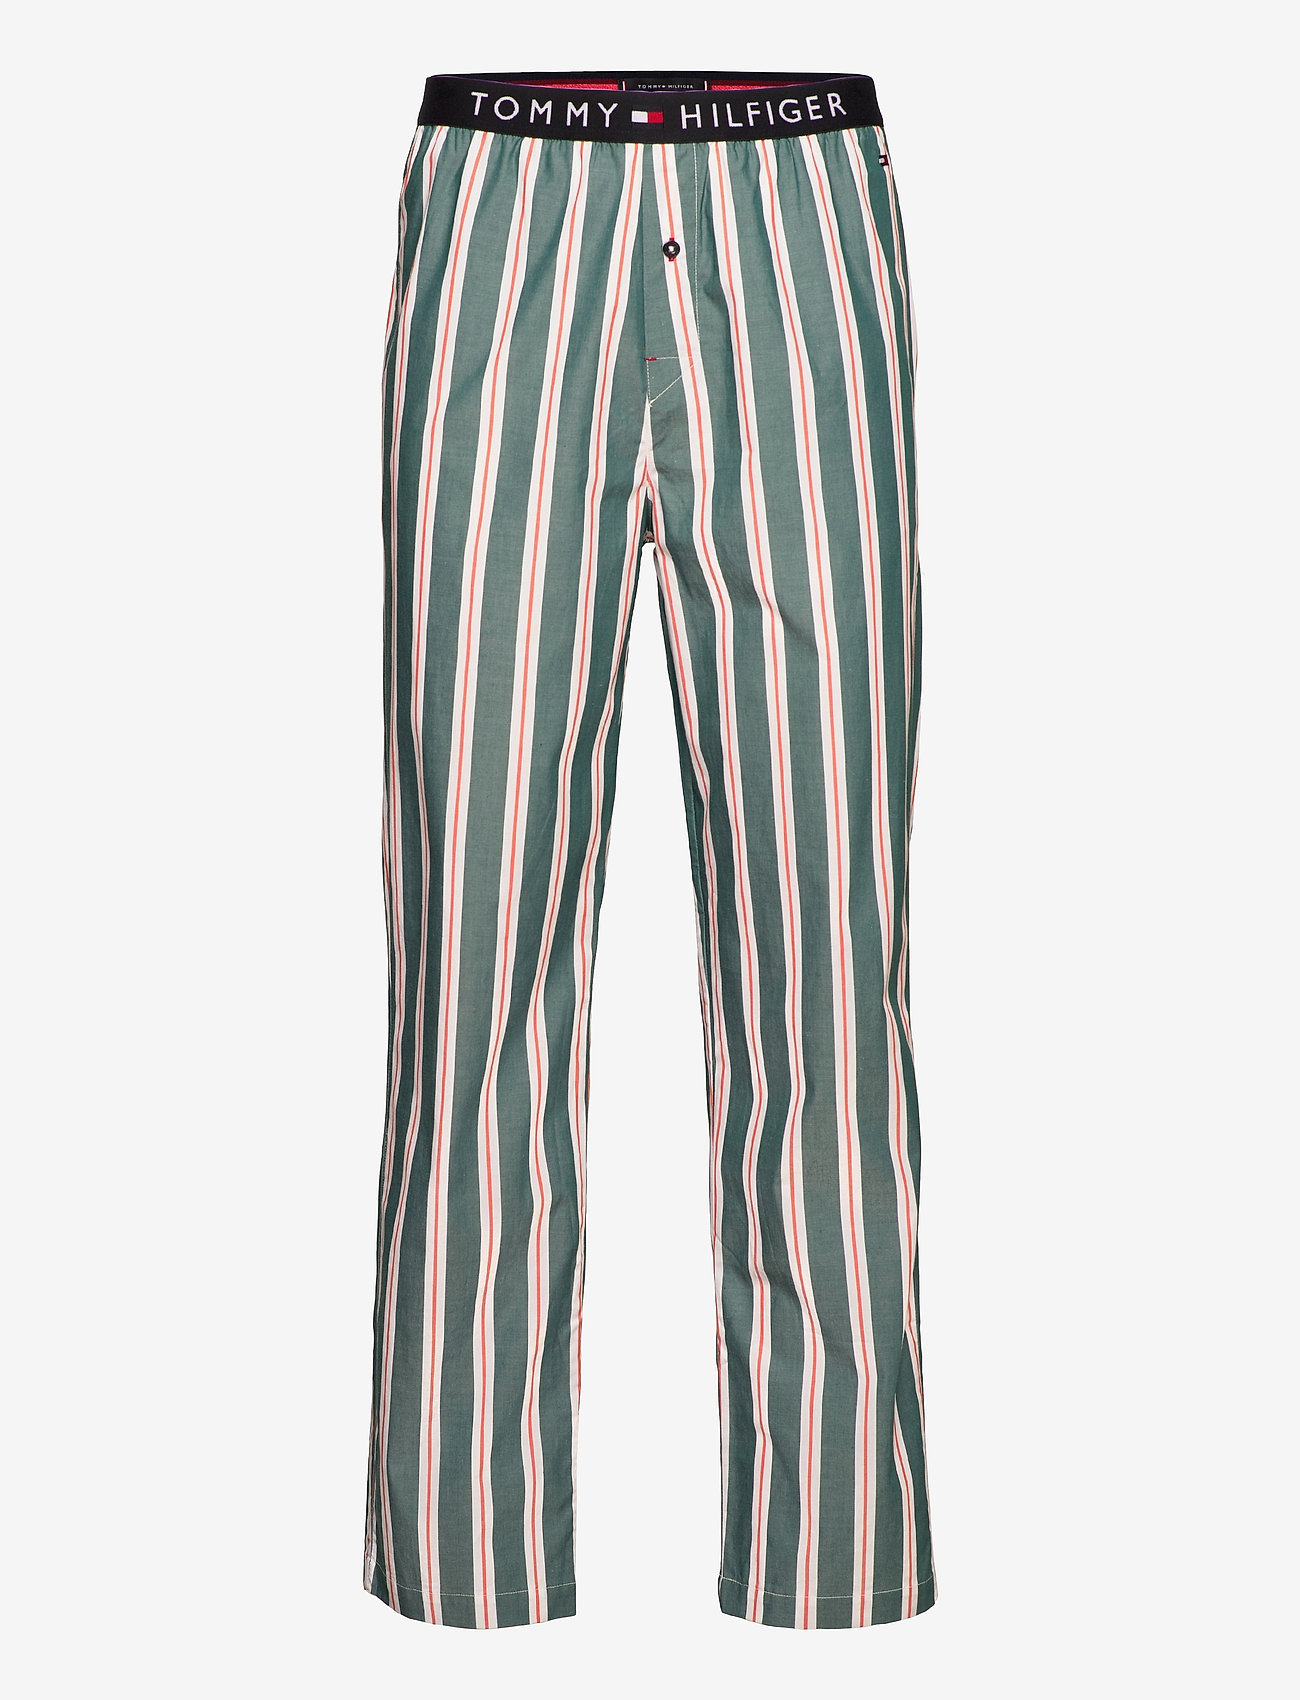 Tommy Hilfiger - WOVEN PANT PRINT - bottoms - heritage stripe - 0